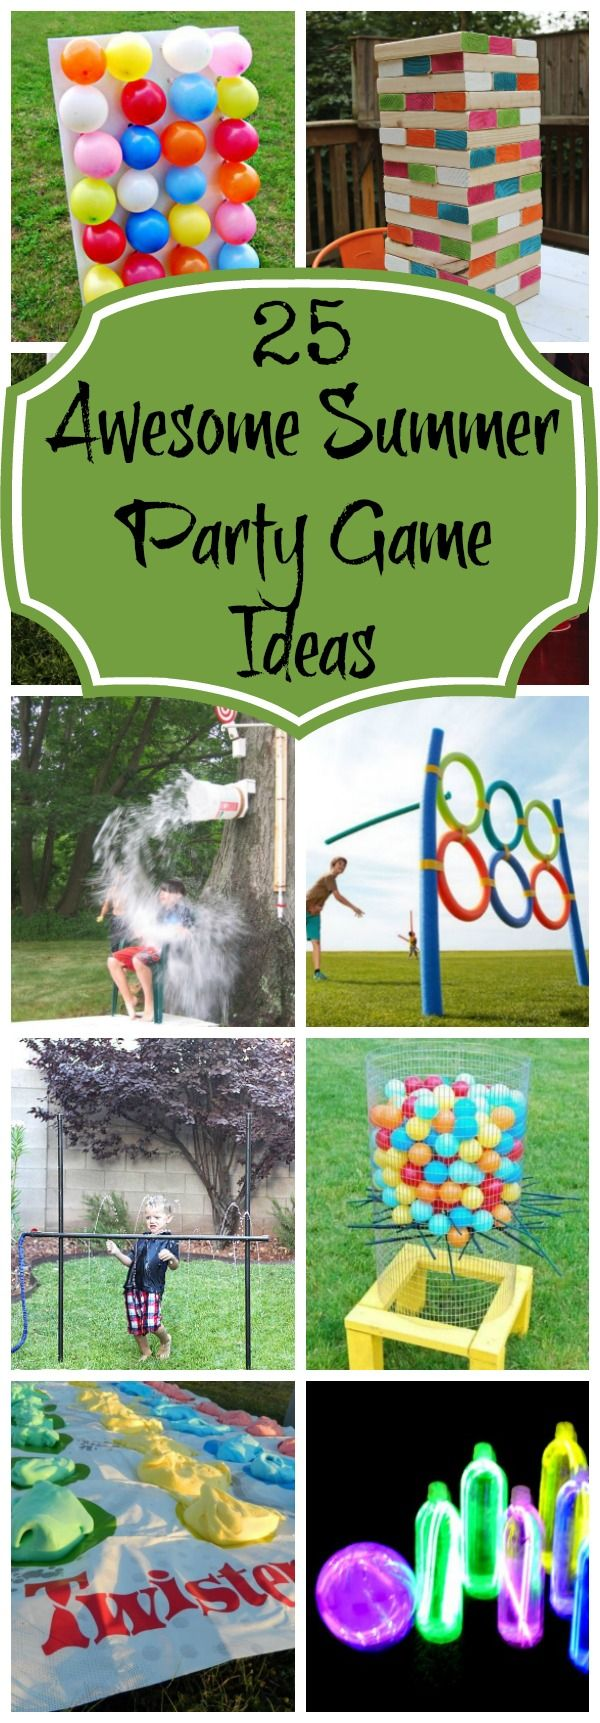 25 Best Backyard Birthday party Games #birthday #party | The Gift Experience https://www.thegiftexperience.co.uk/